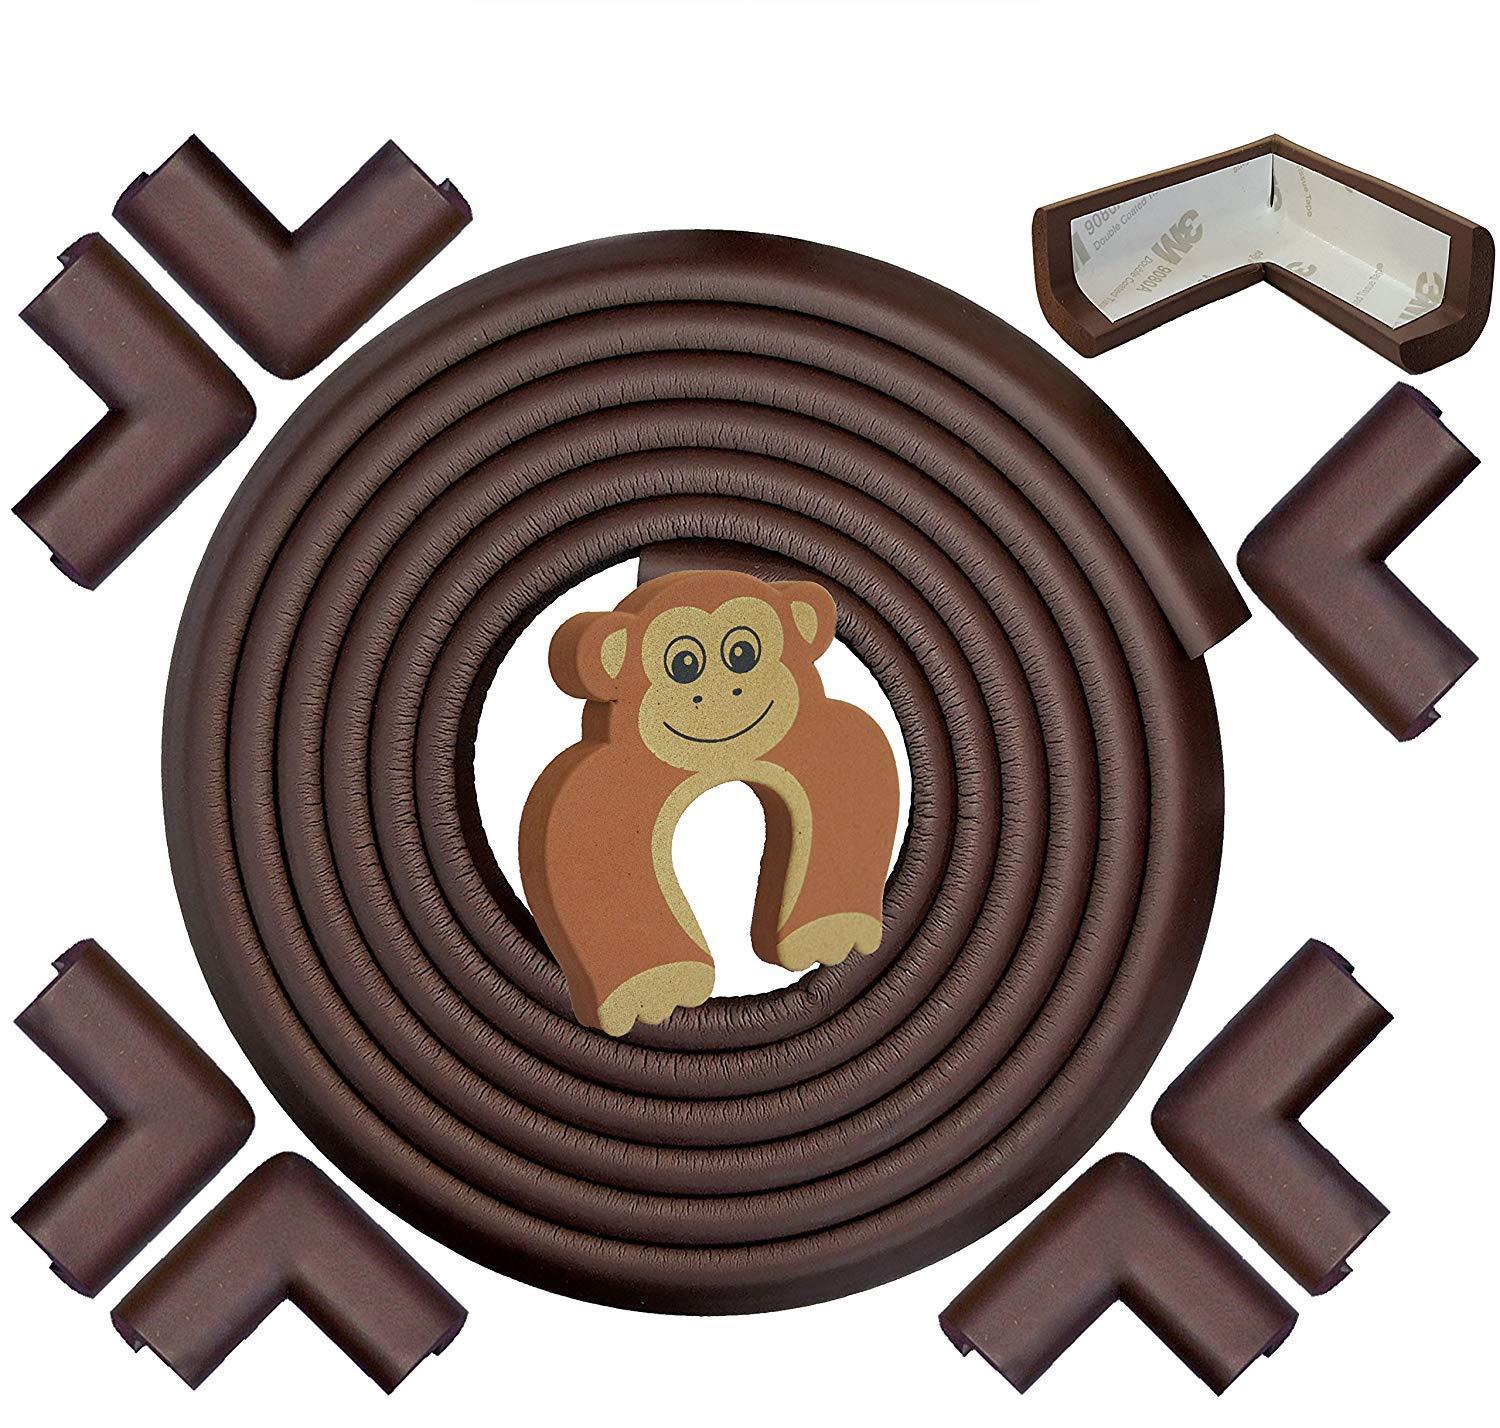 Corner Protectors and Edge Bumpers- 5m/20ft [16.5ft Edge Guards + 8 Corner Guards] Baby Safety Furniture Bumpers & Corner Cushions; Baby Proofing Table Edge Protector for Furniture (Brown)